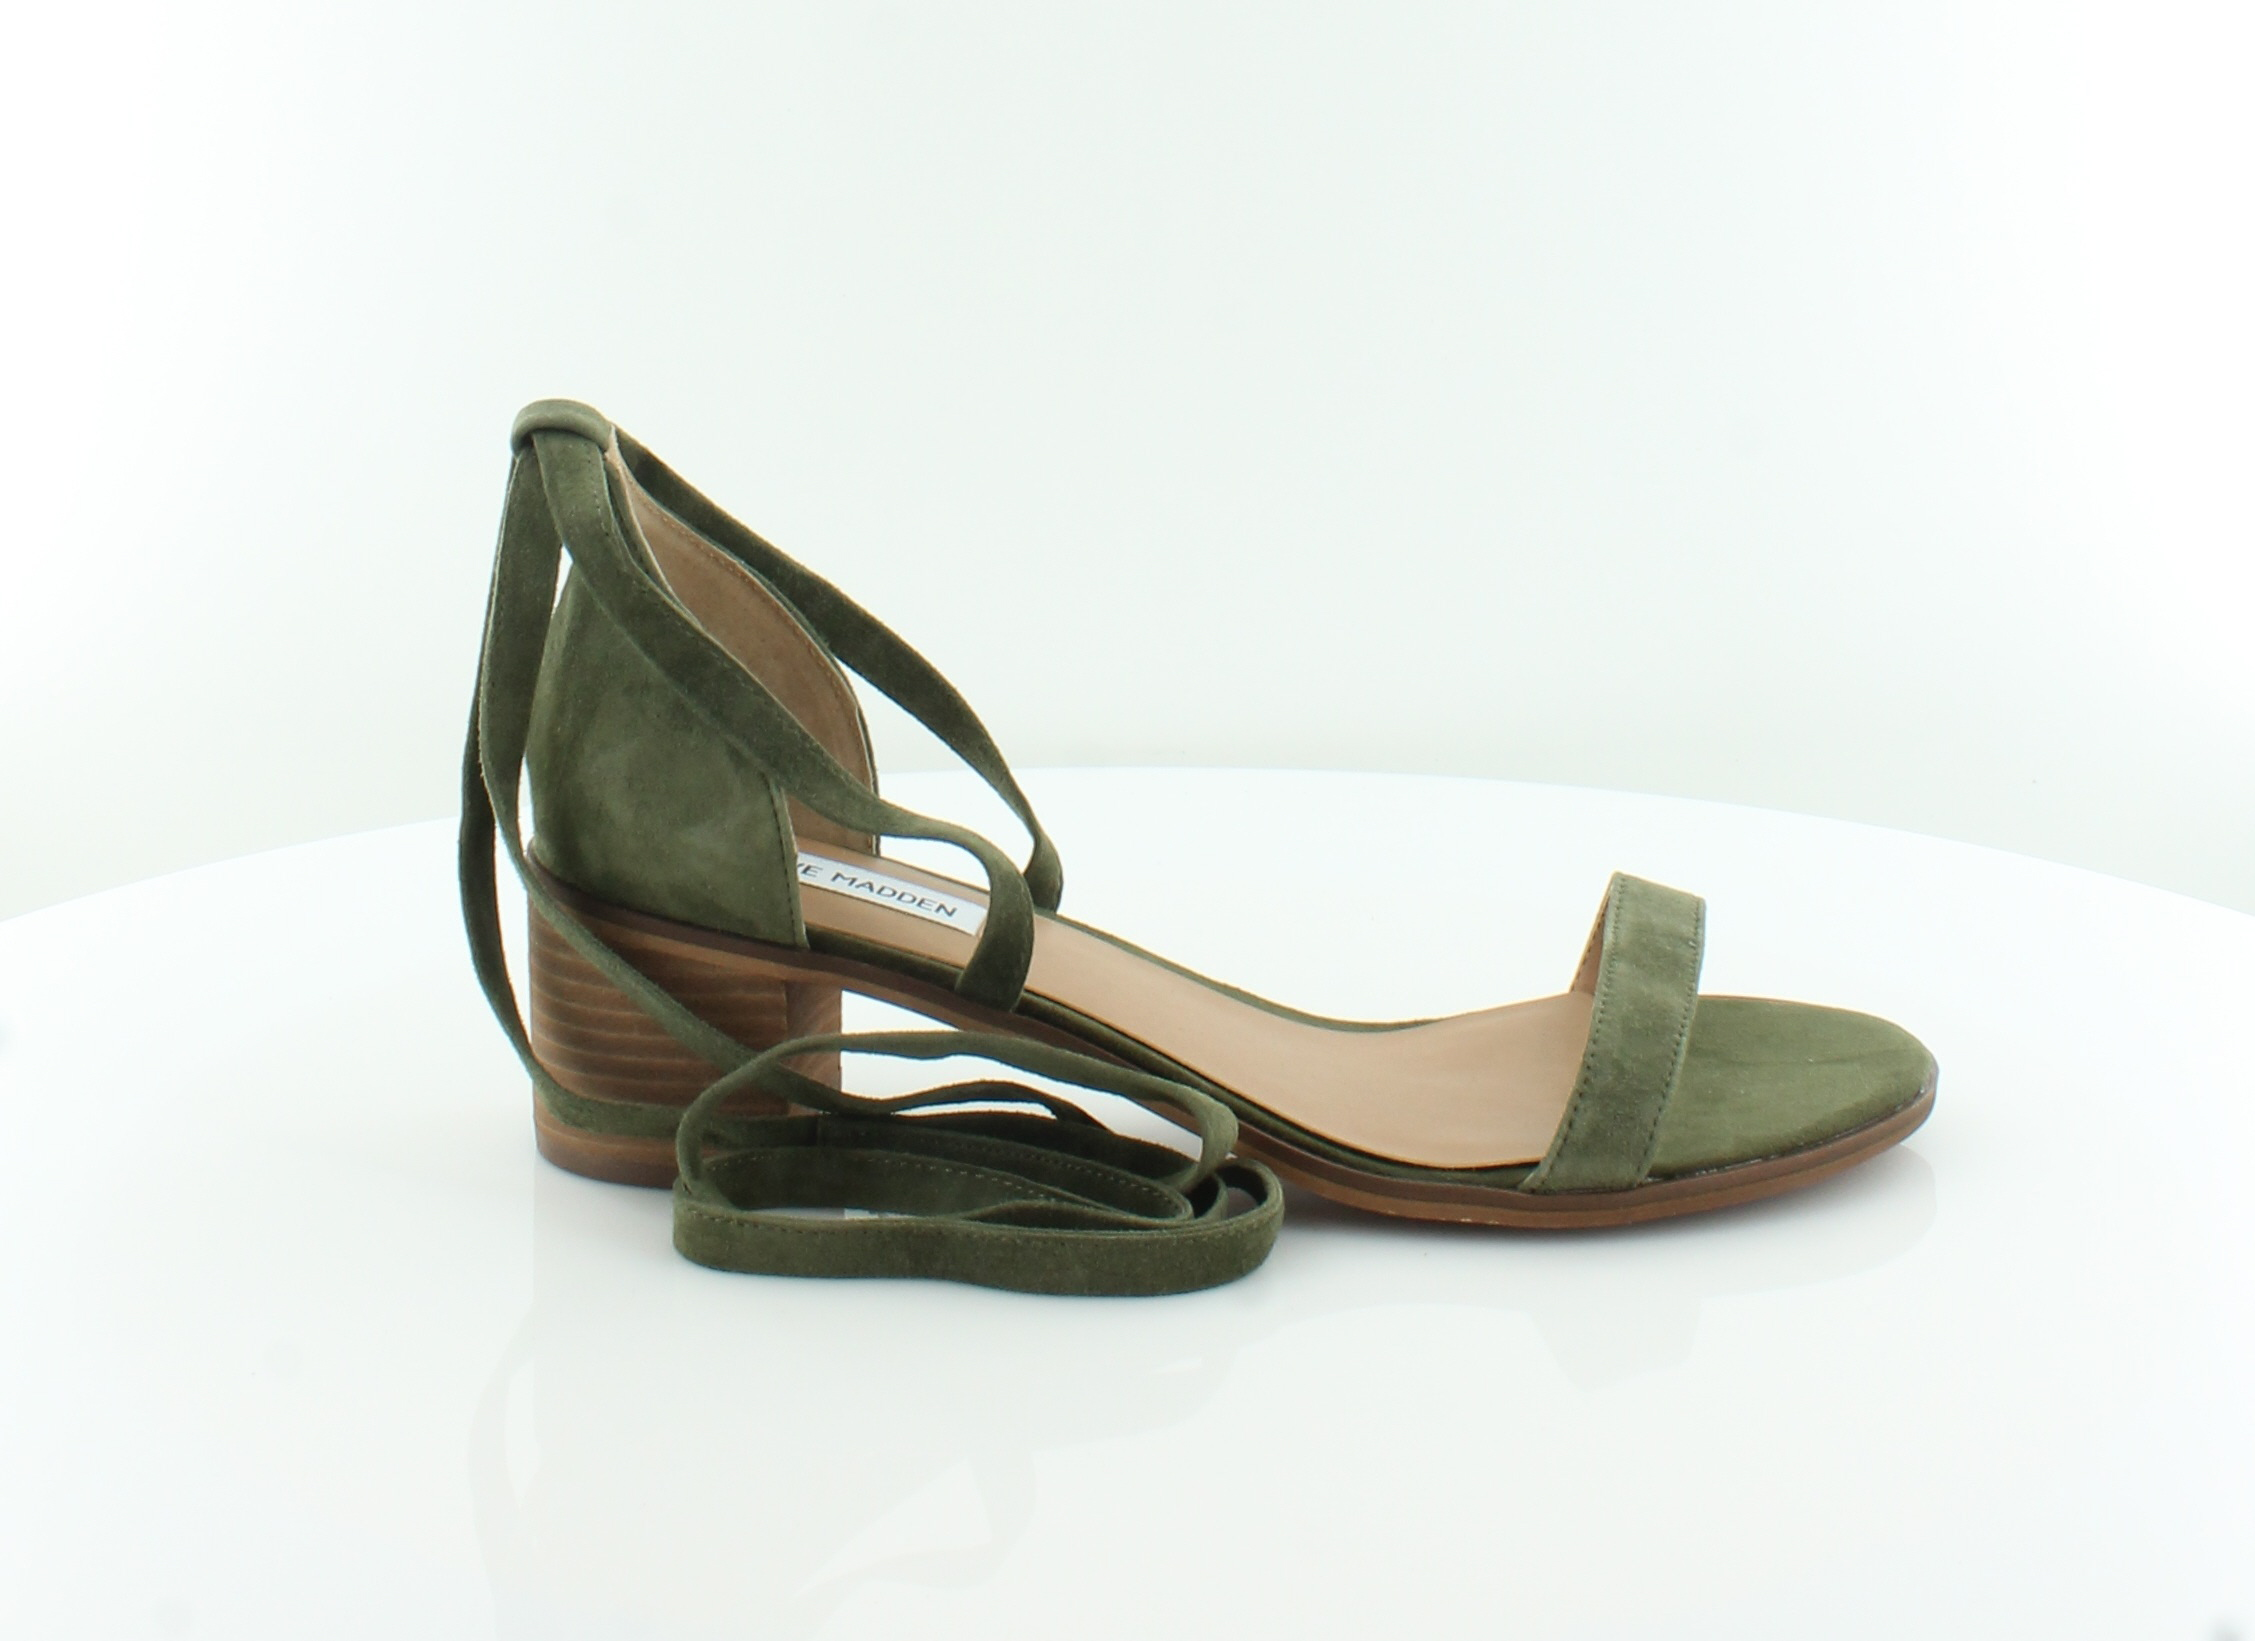 9c562f75eb9 Steve Madden New Rizza Green Womens Shoes Size 11 M Sandals MSRP  79 ...